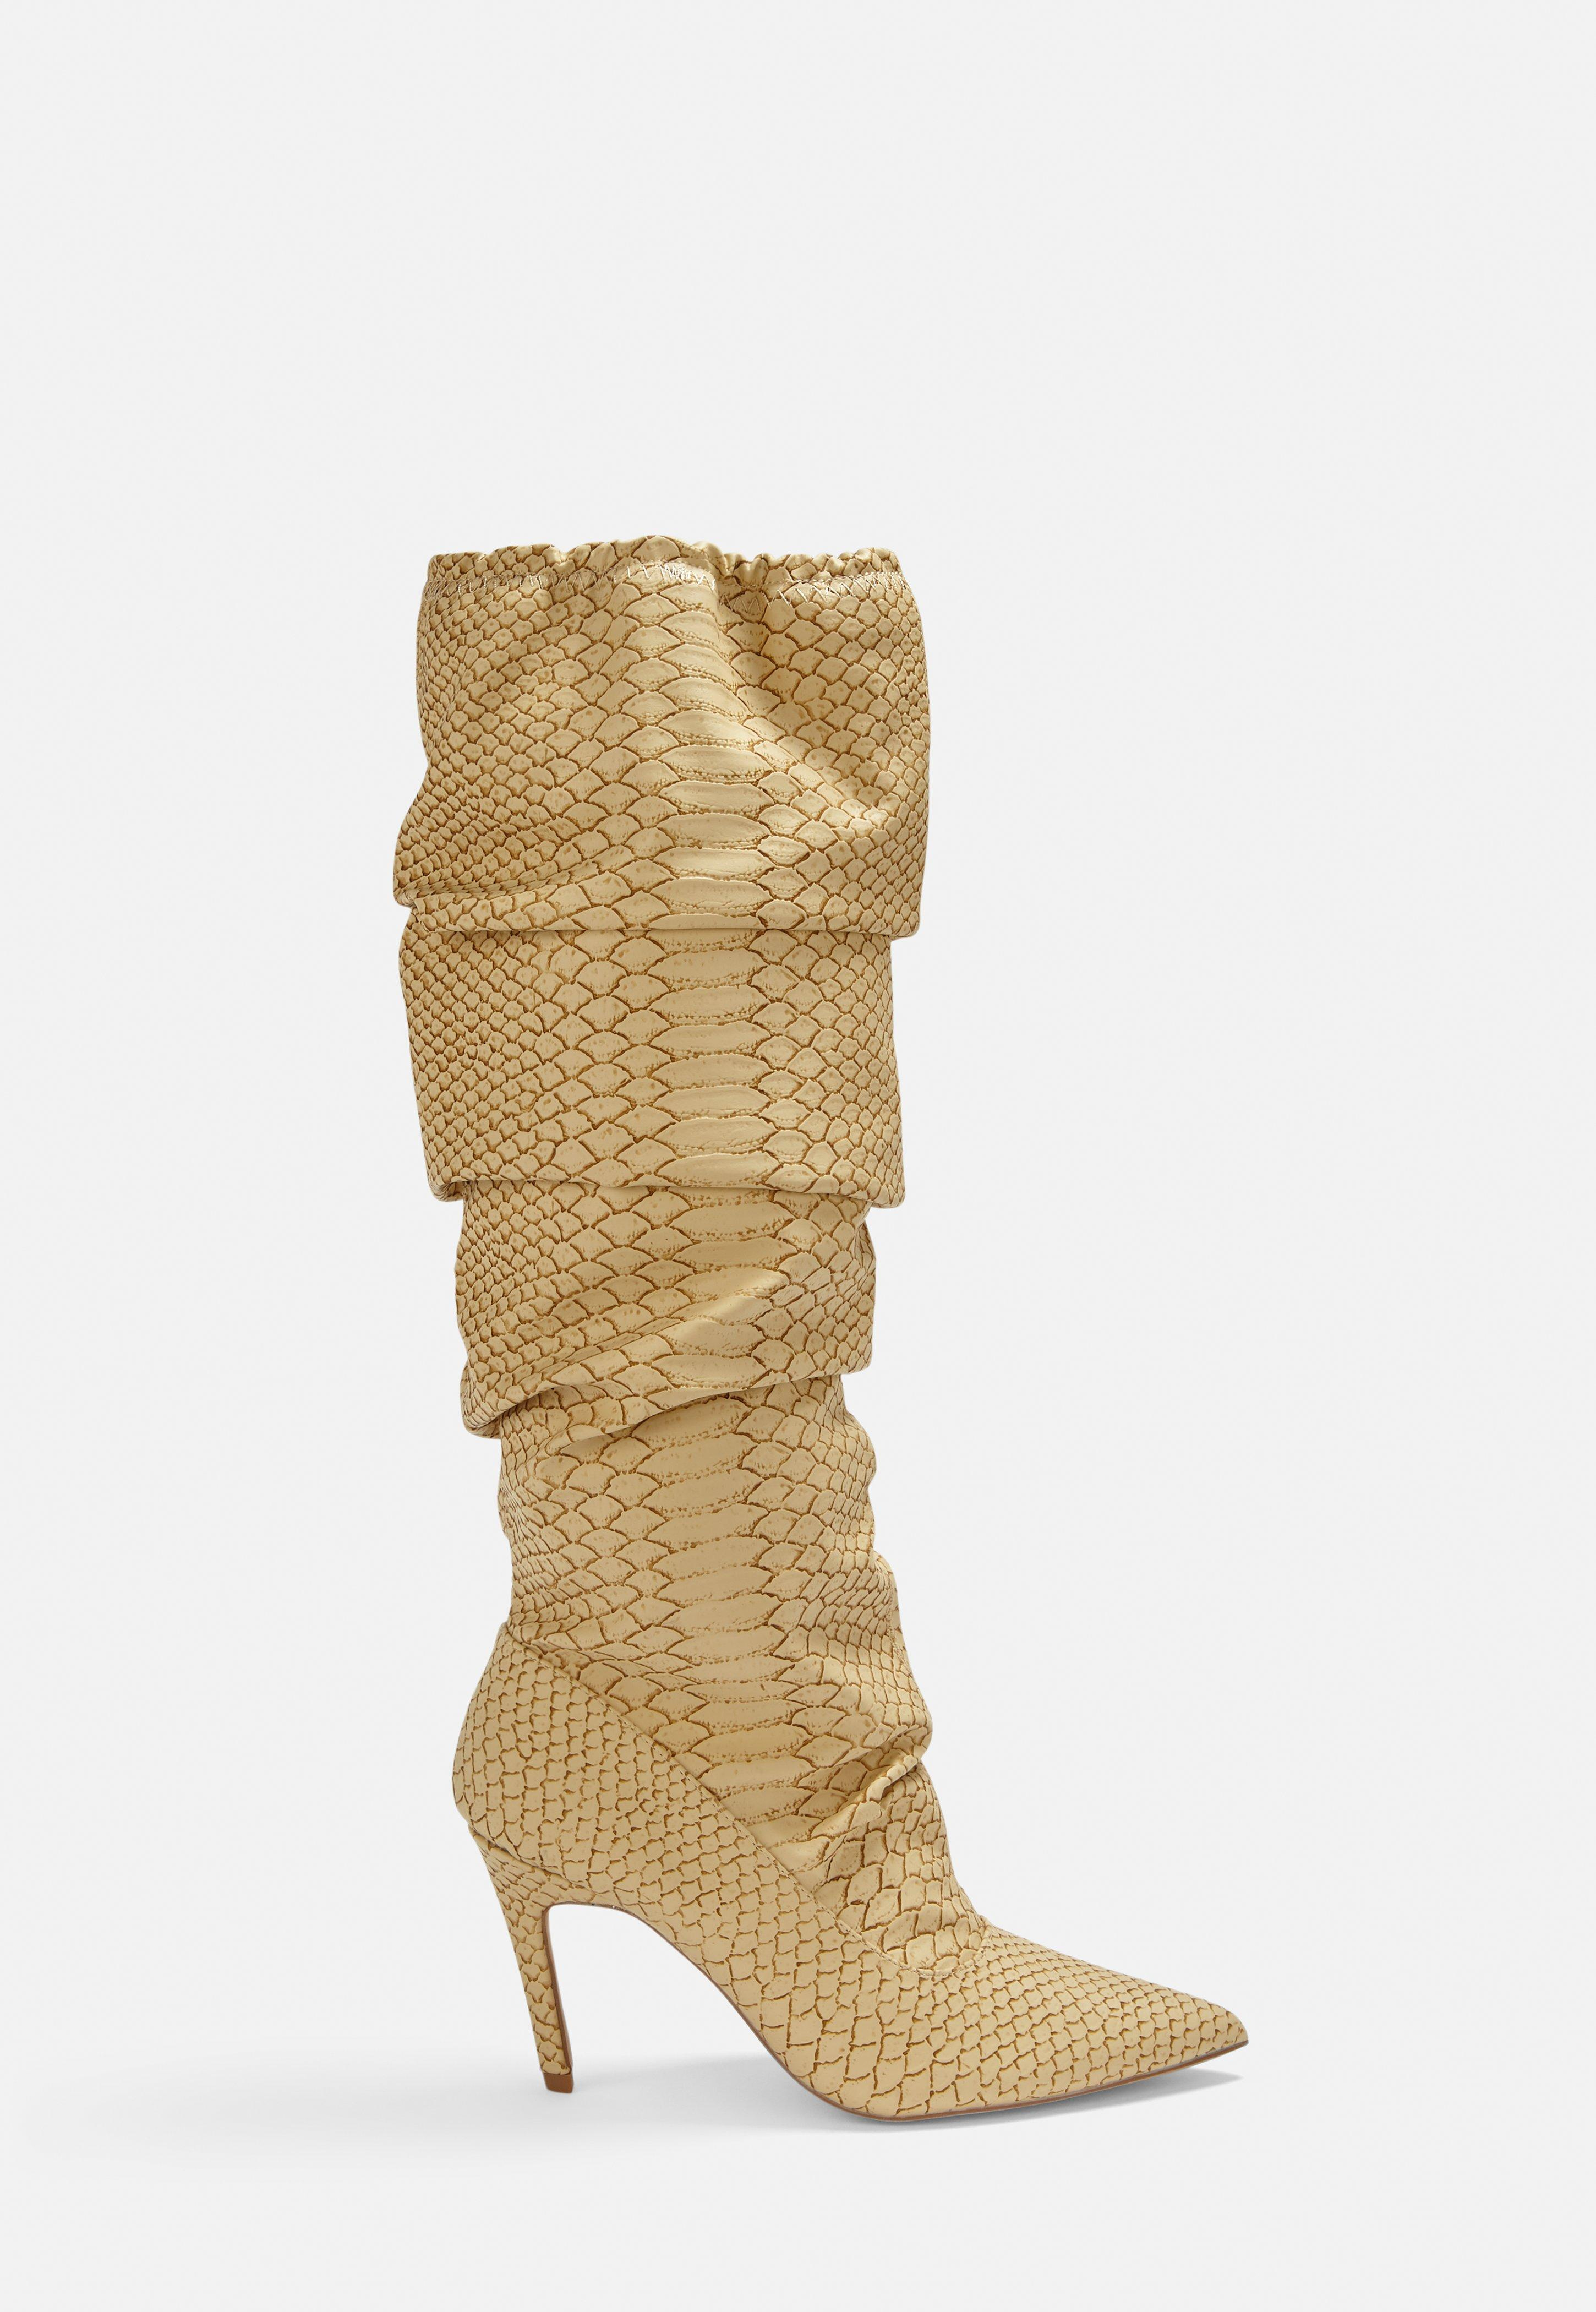 8d005adab54 Beige Snake Print Ruched Pointed Toe Heeled Boots